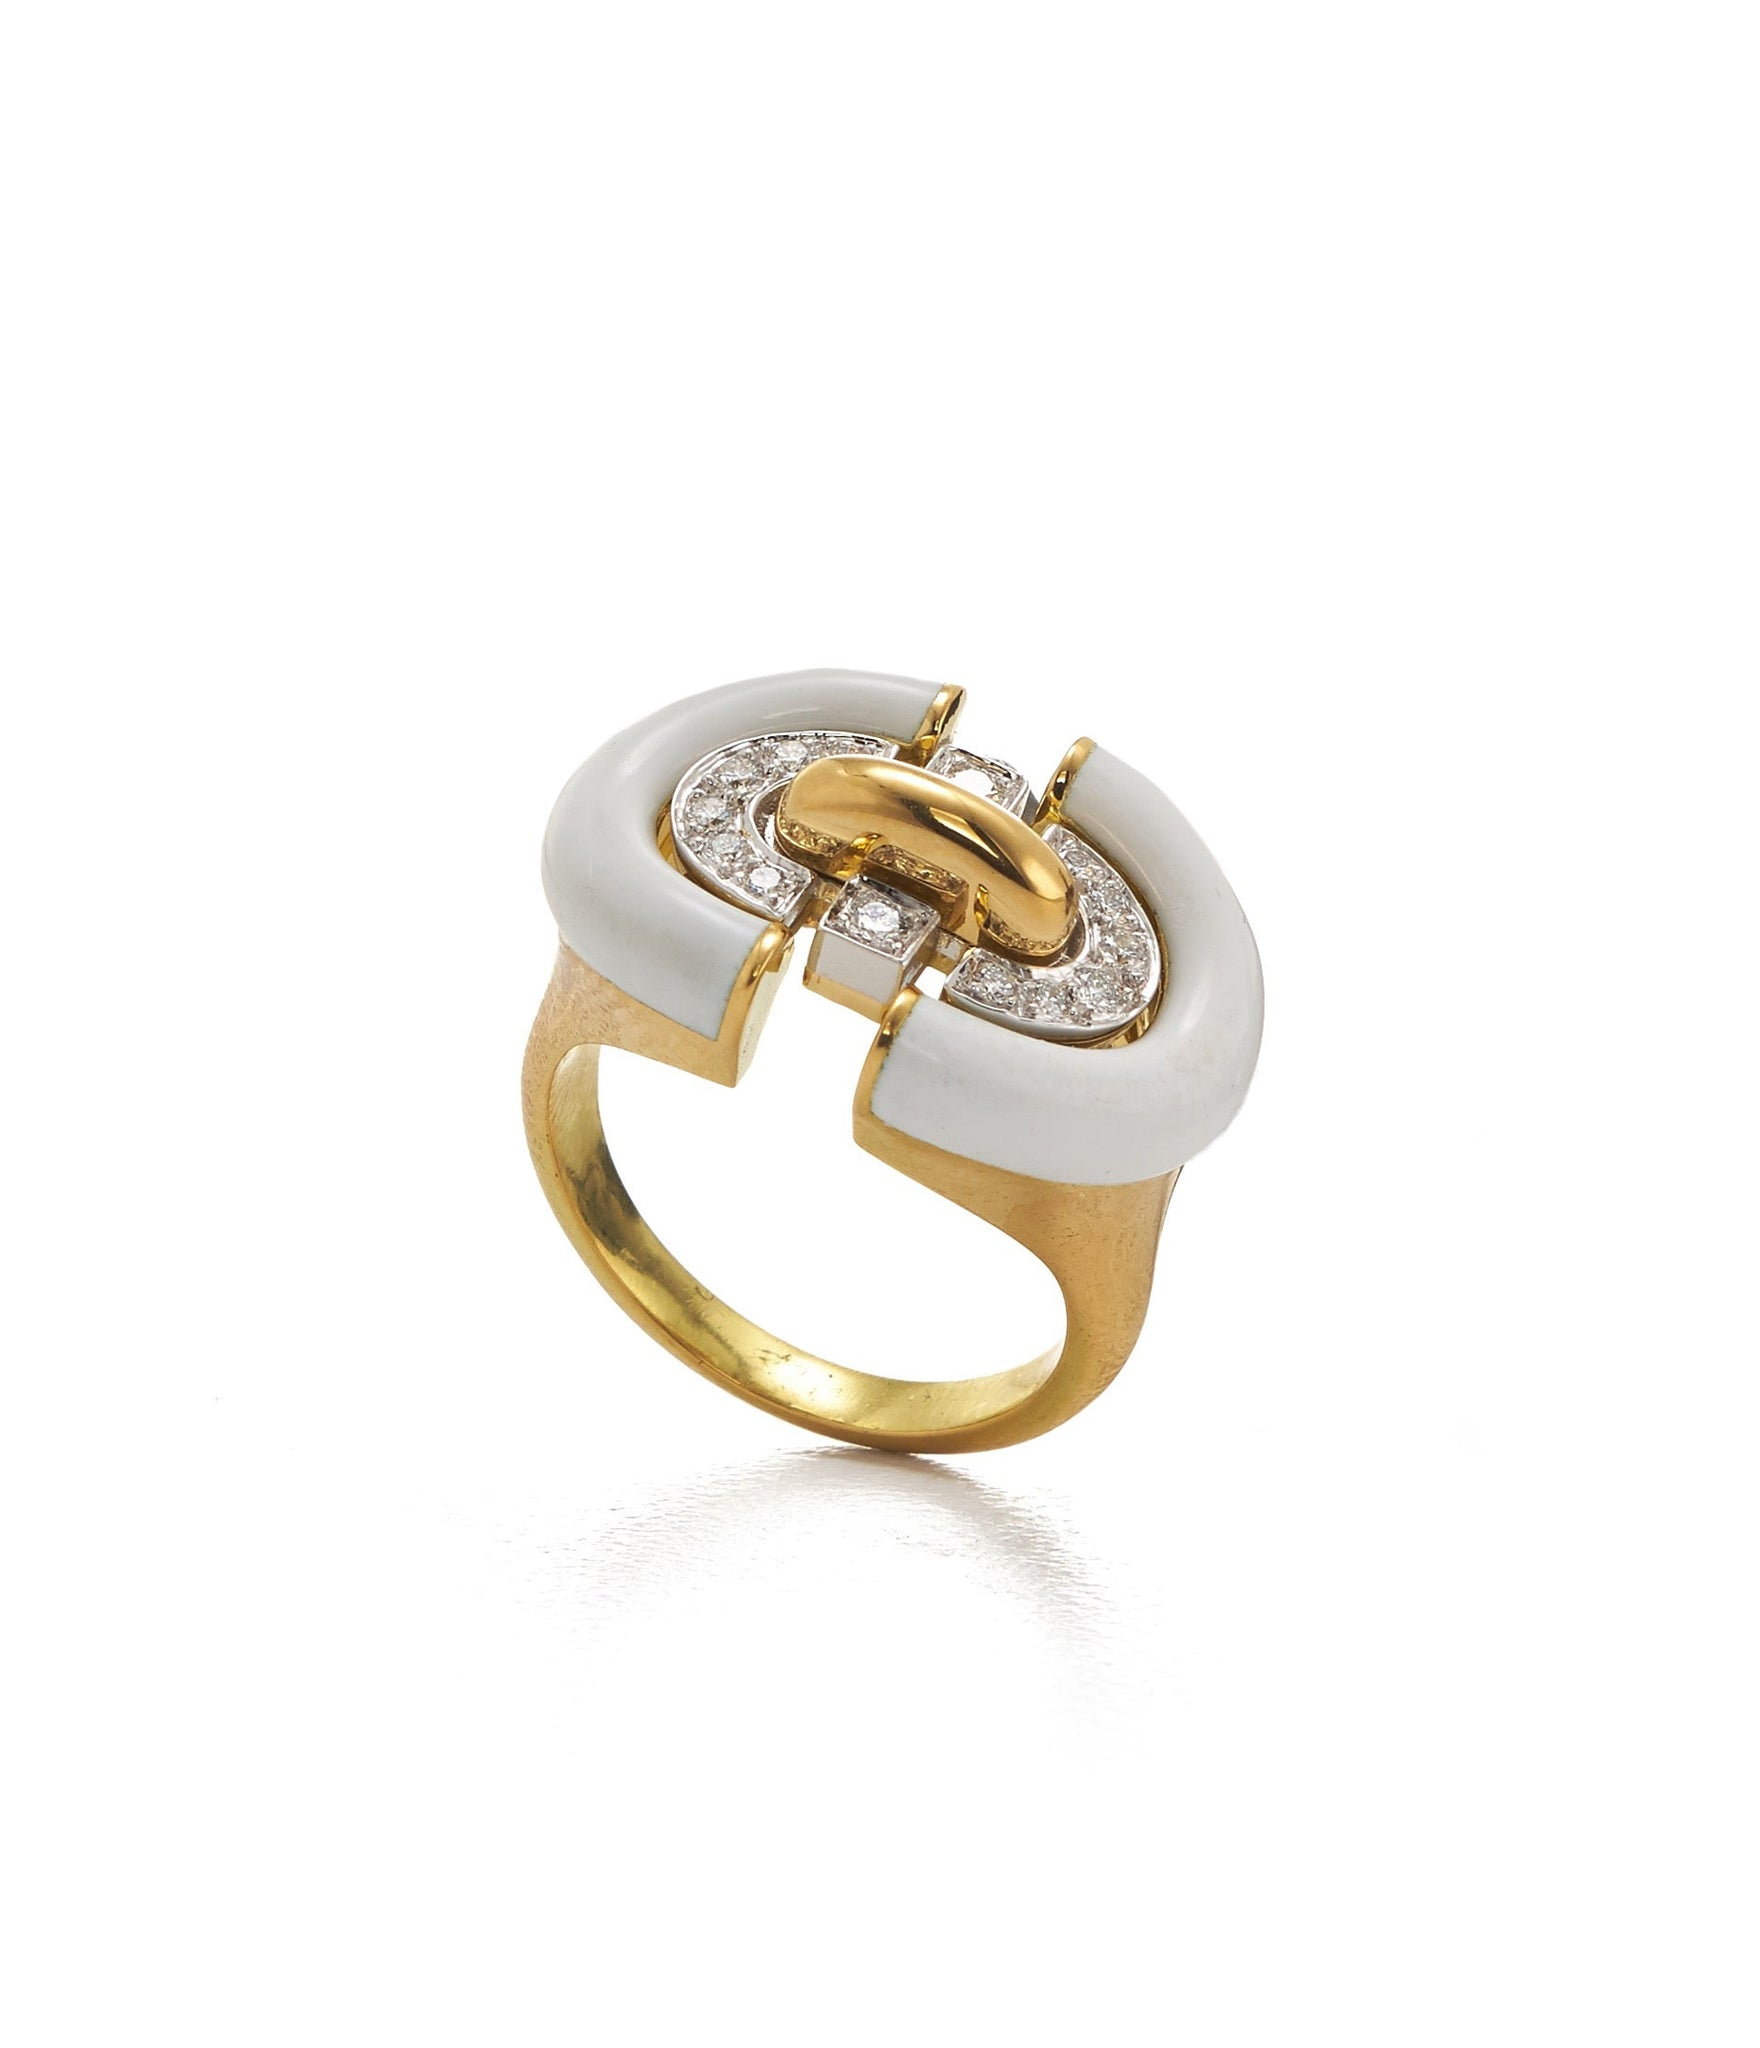 David Webb - Motif - Unity Ring - white enamel